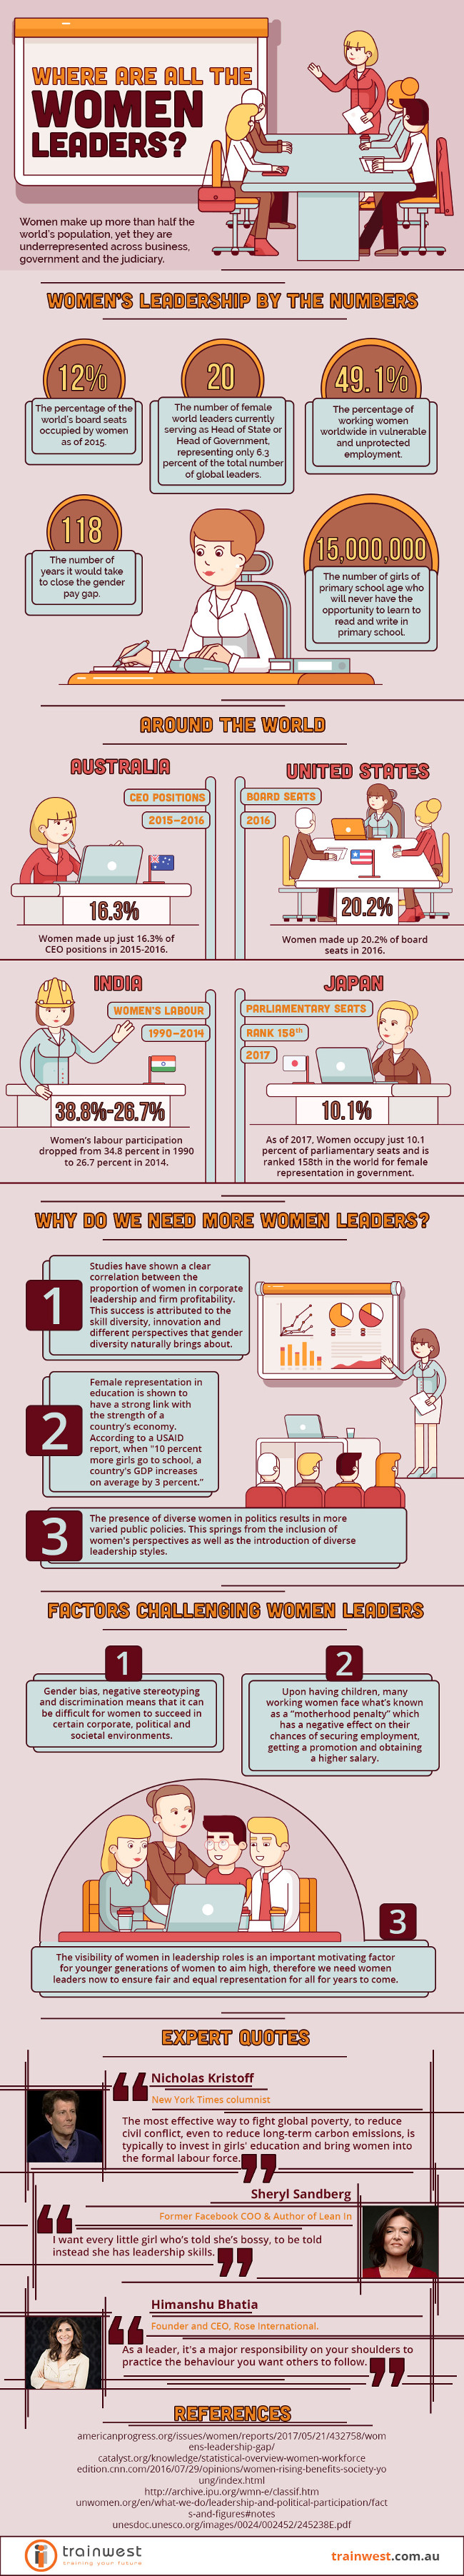 Where Are All the Women Leaders? [Infographic]